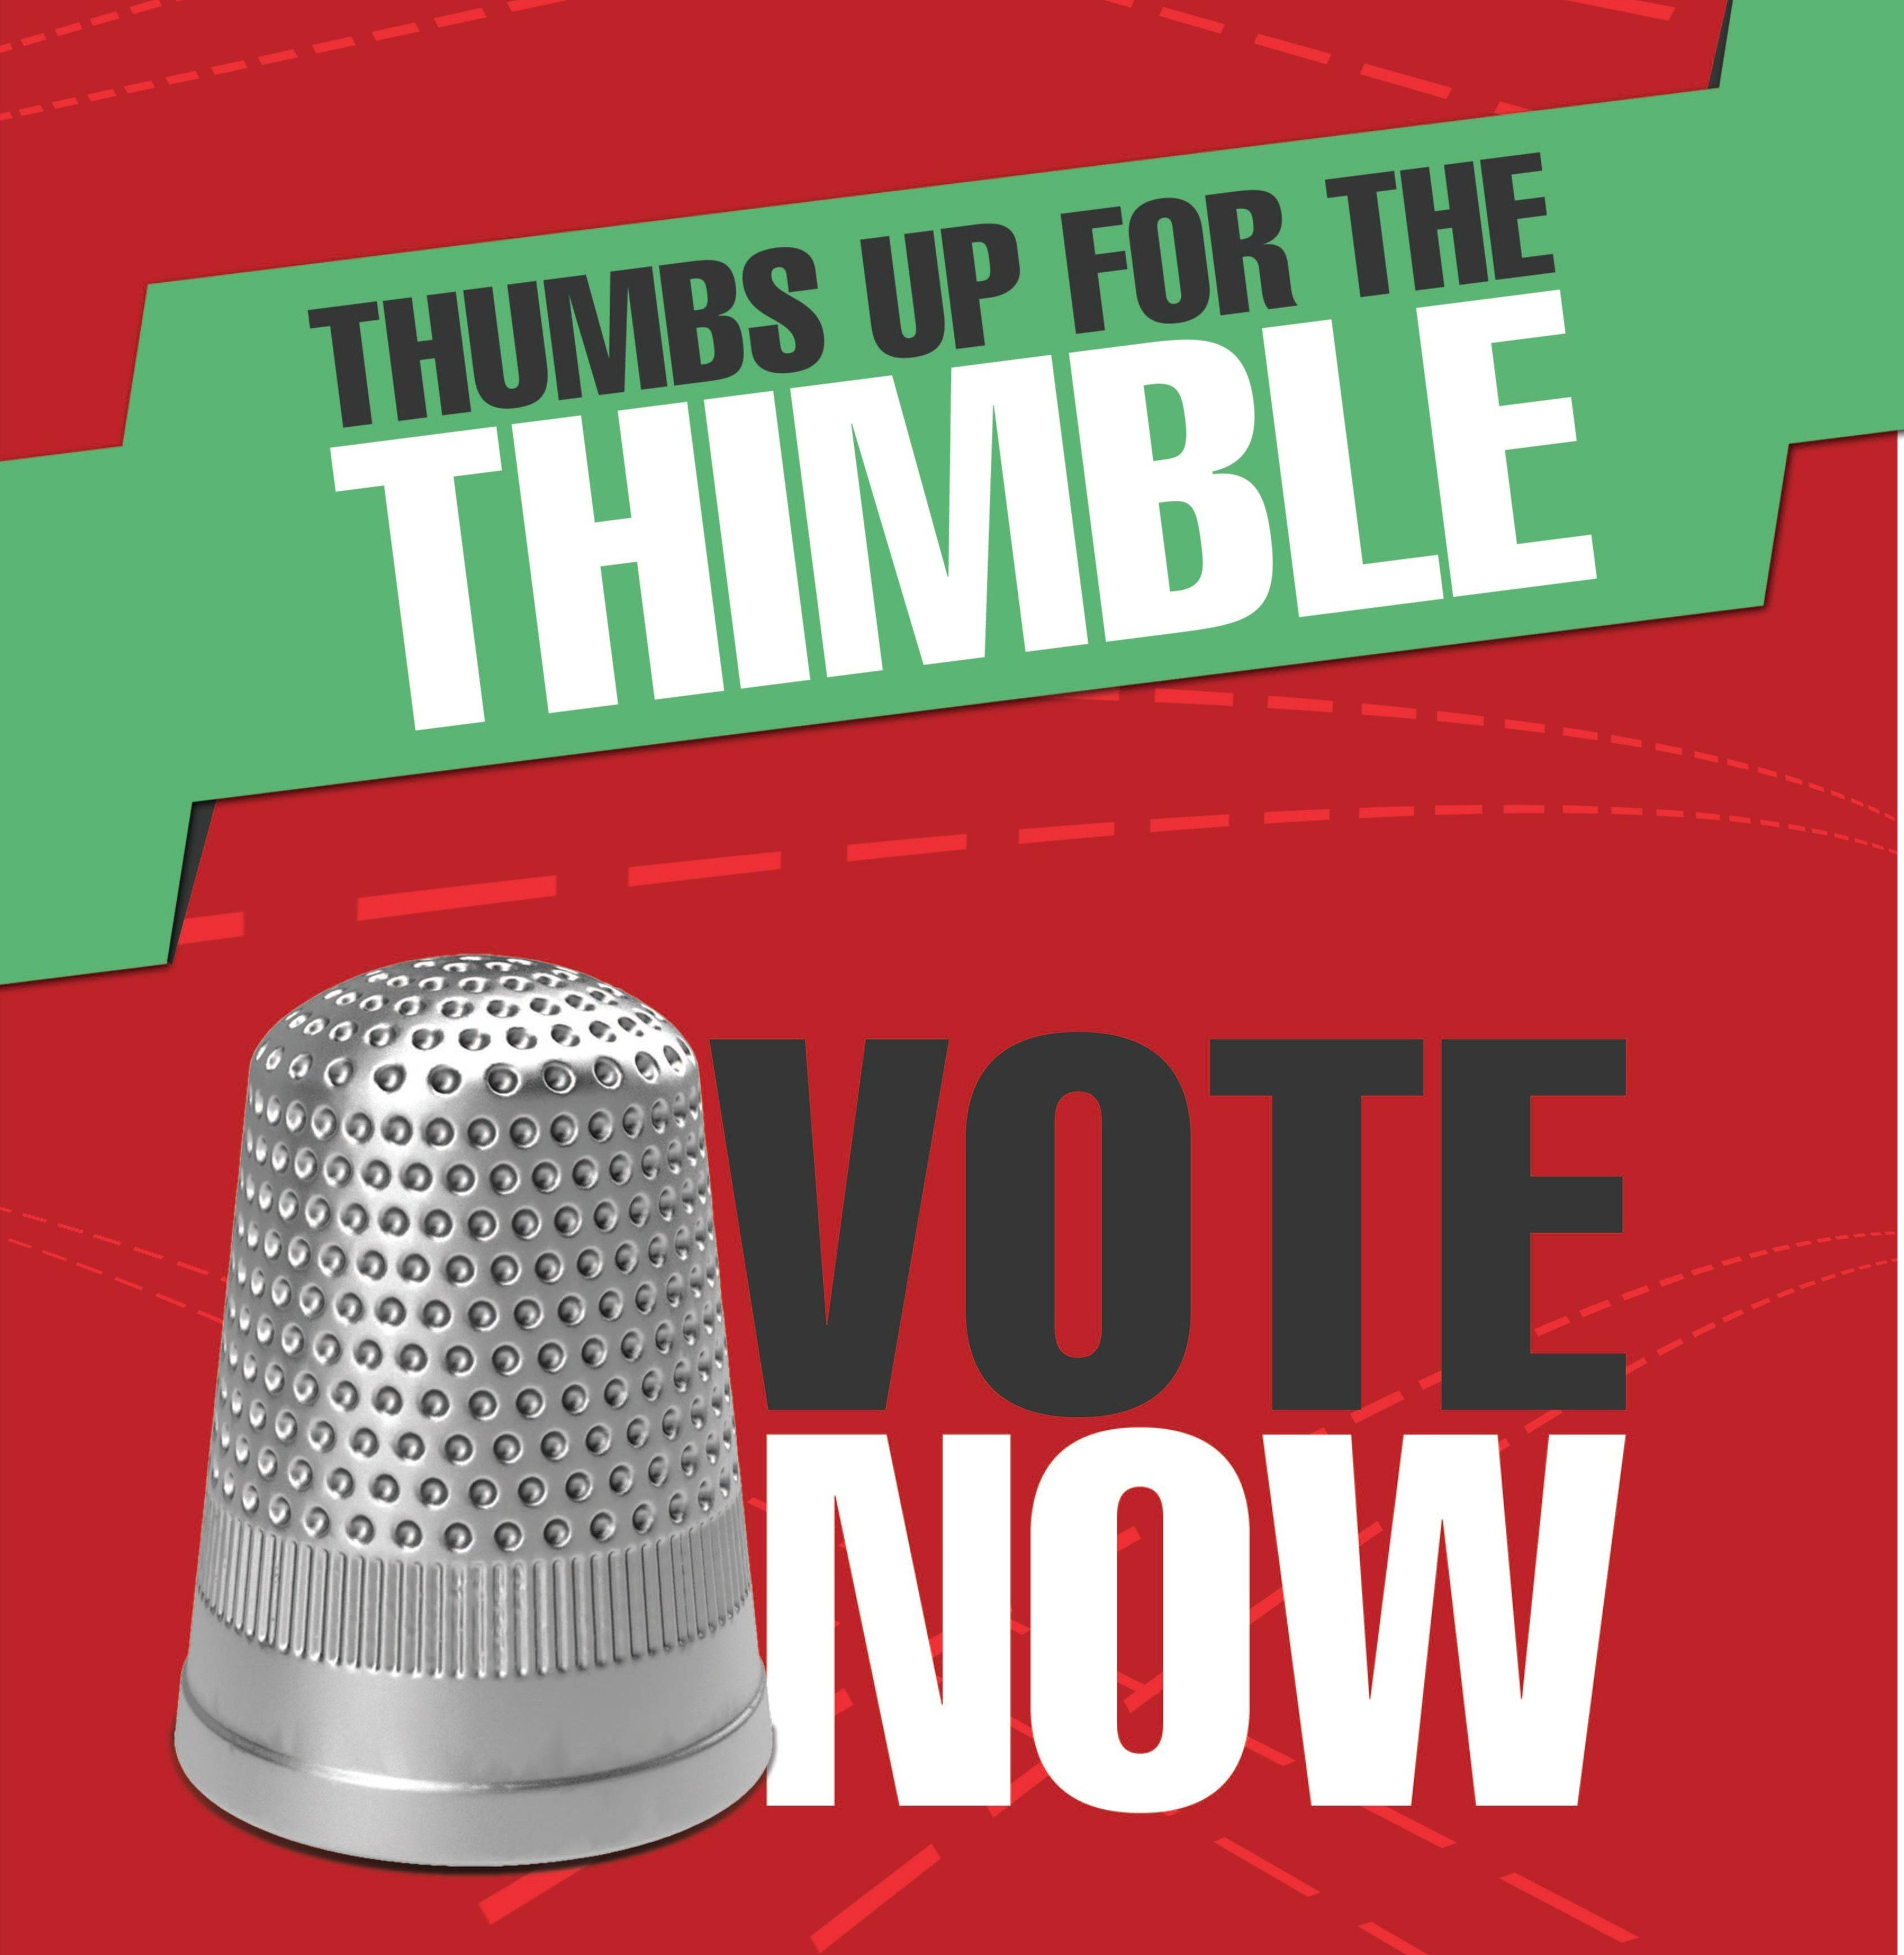 This image provided by Hasbro shows a poster encouraging people to vote for the thimble gamepiece. Hasbro allowed the public to vote on which token should be retired from its classic game Monopoly. Voting ended at midnight and results will be announced today -- along with a new replacement token.